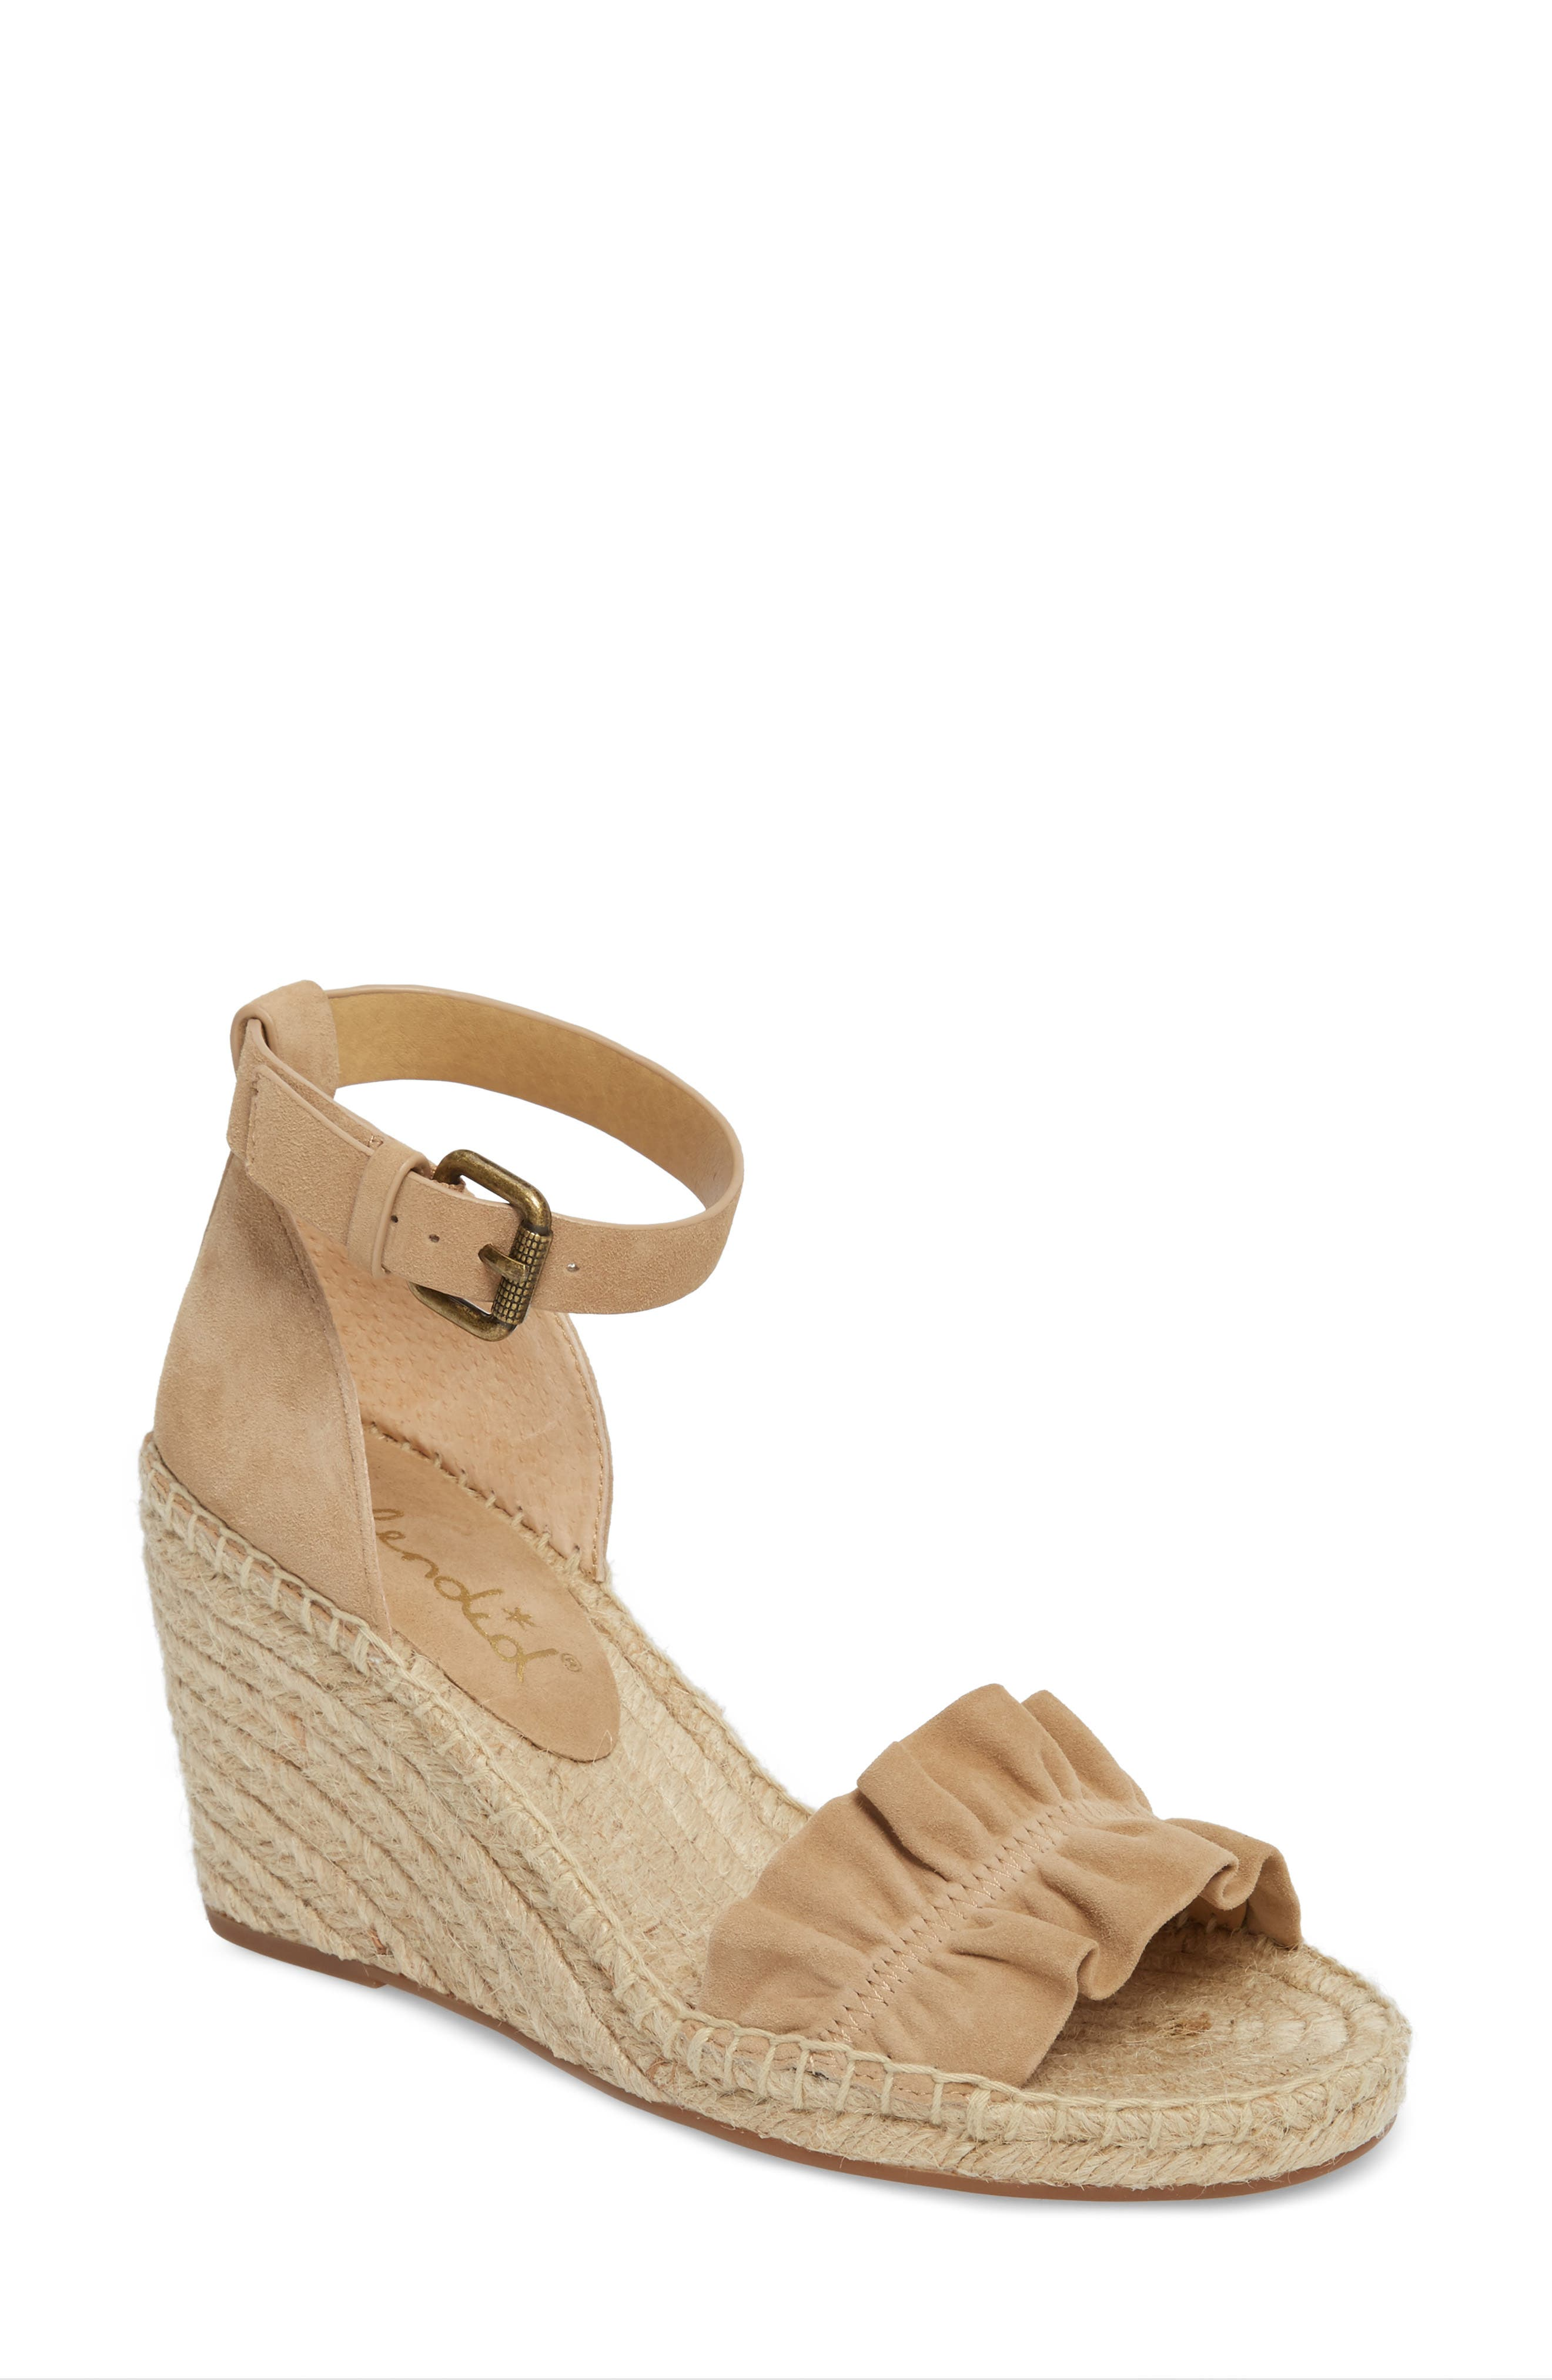 Bedford Espadrille Wedge Sandal,                         Main,                         color, 021